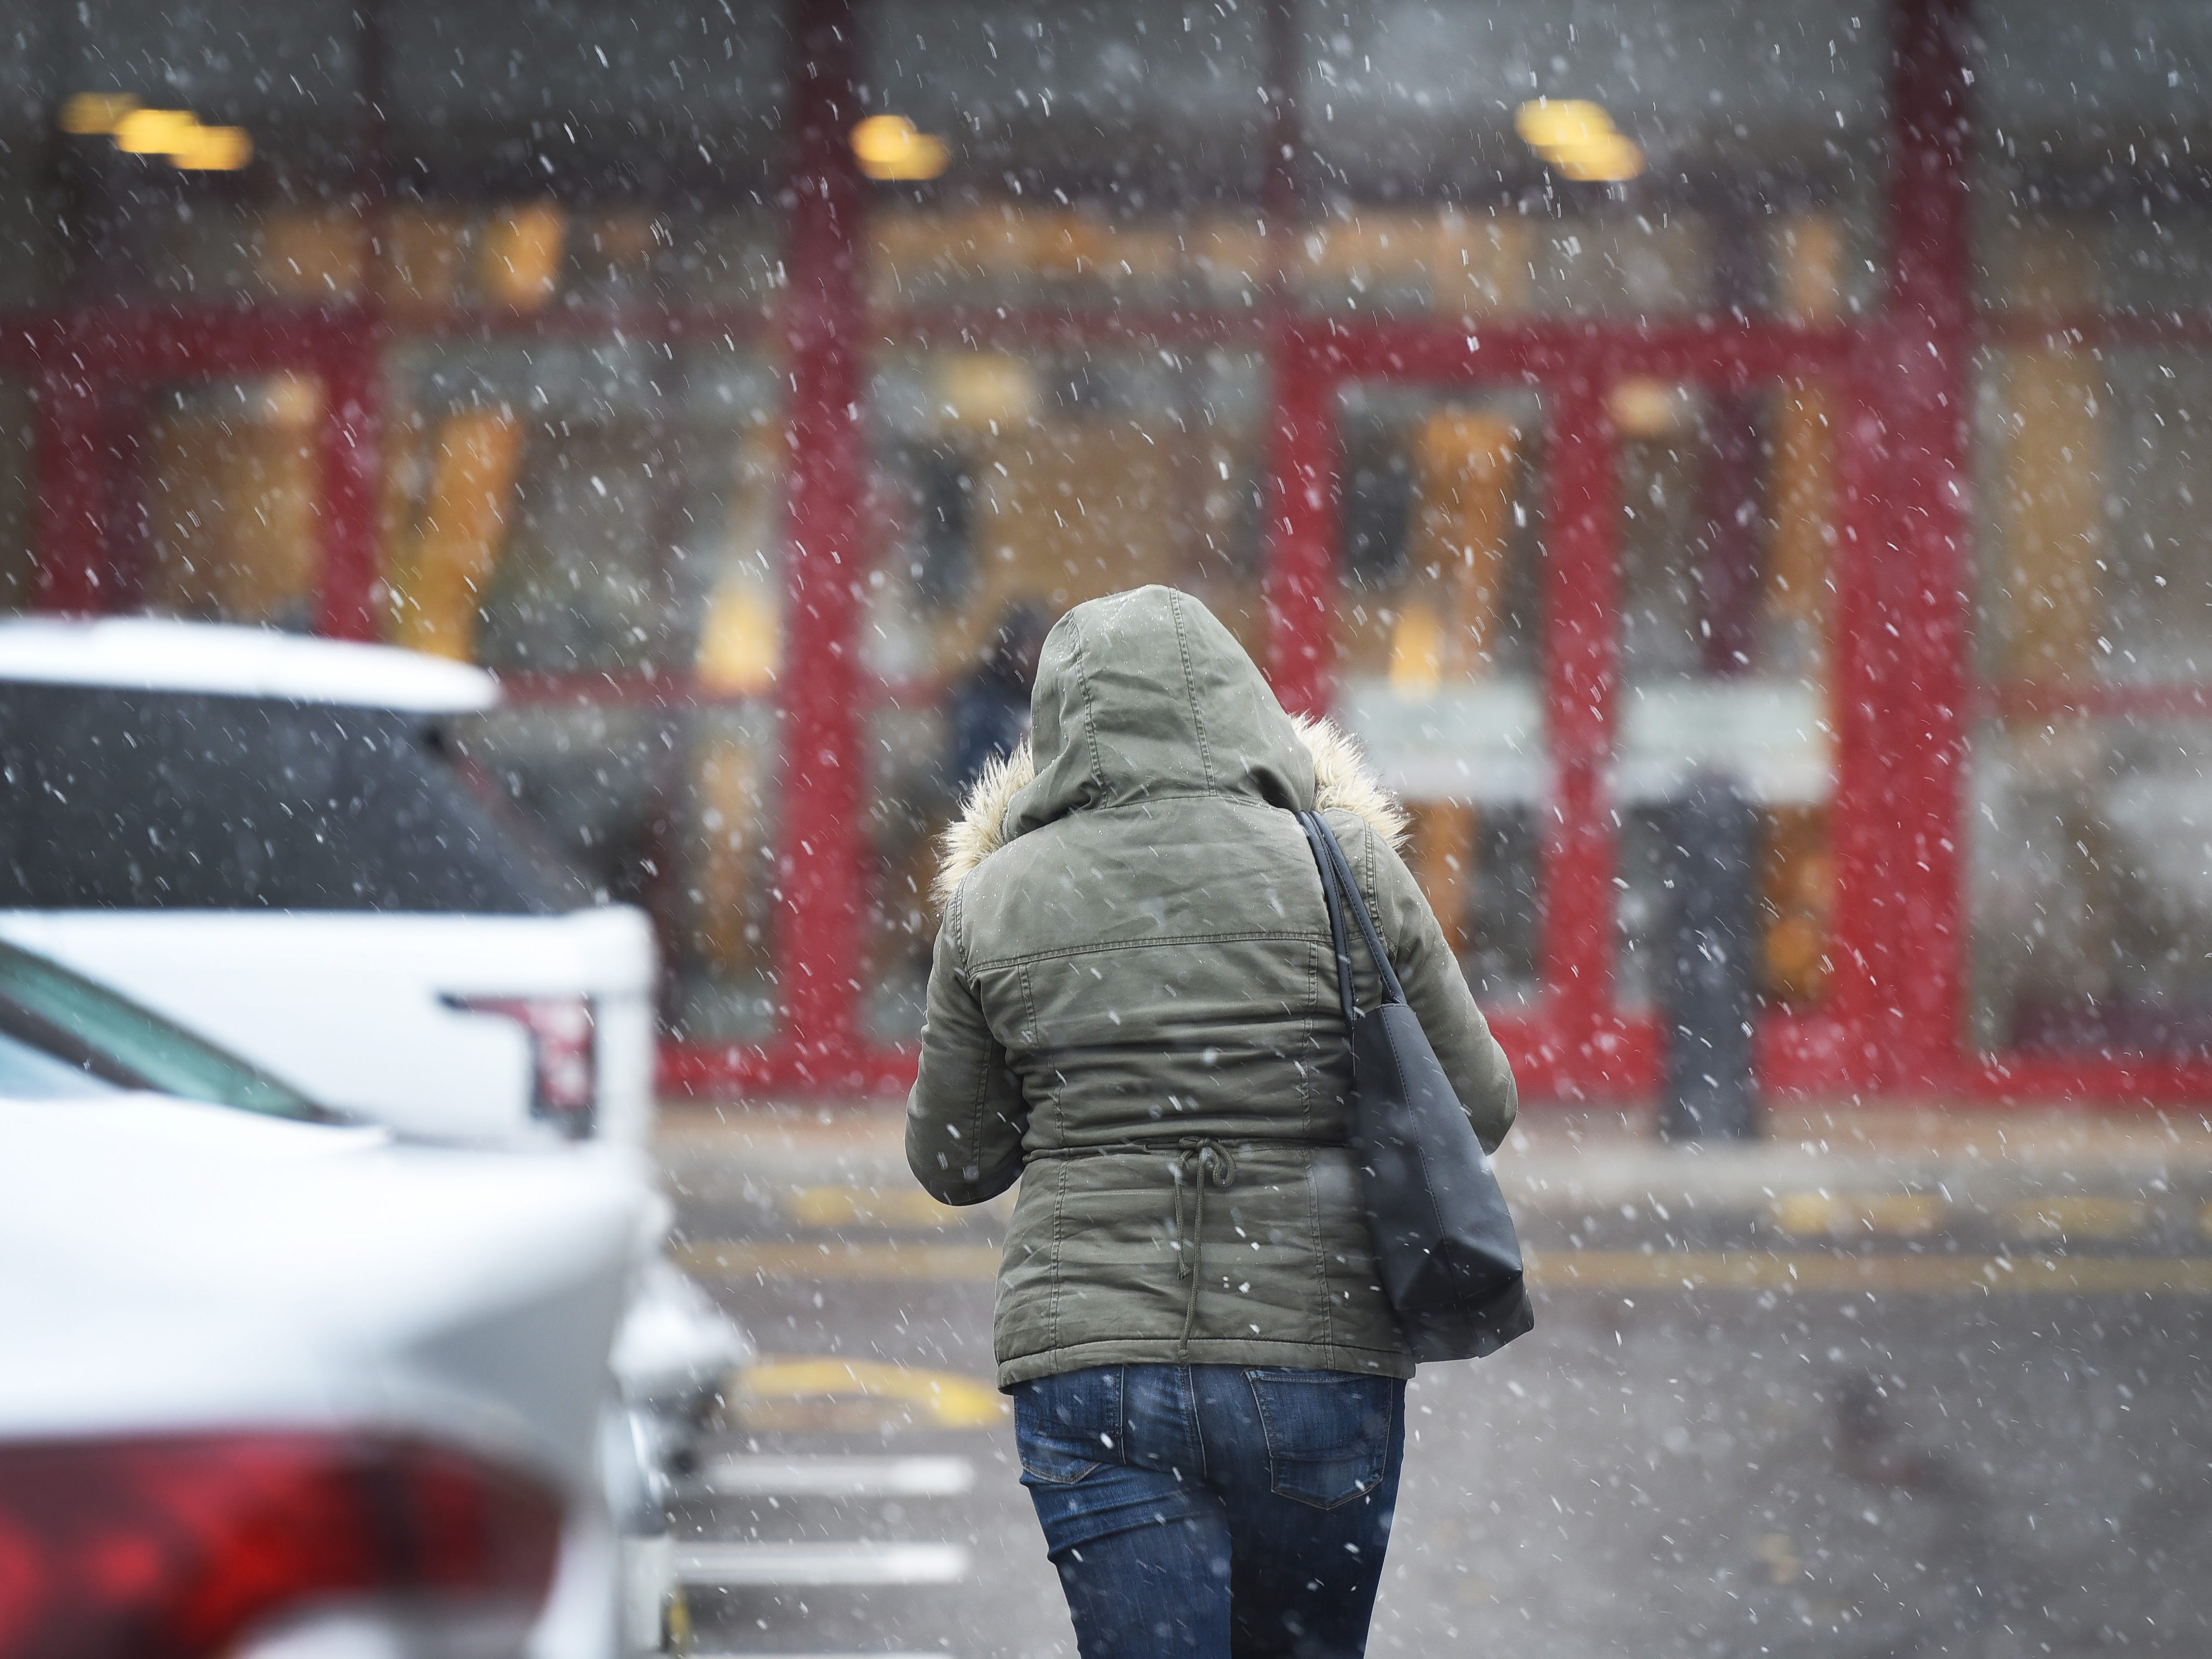 November 15, 2018, Paramus, NJ, USAA shopper shield herself from the snow as the snow begins to fall at Bergen Town Center.